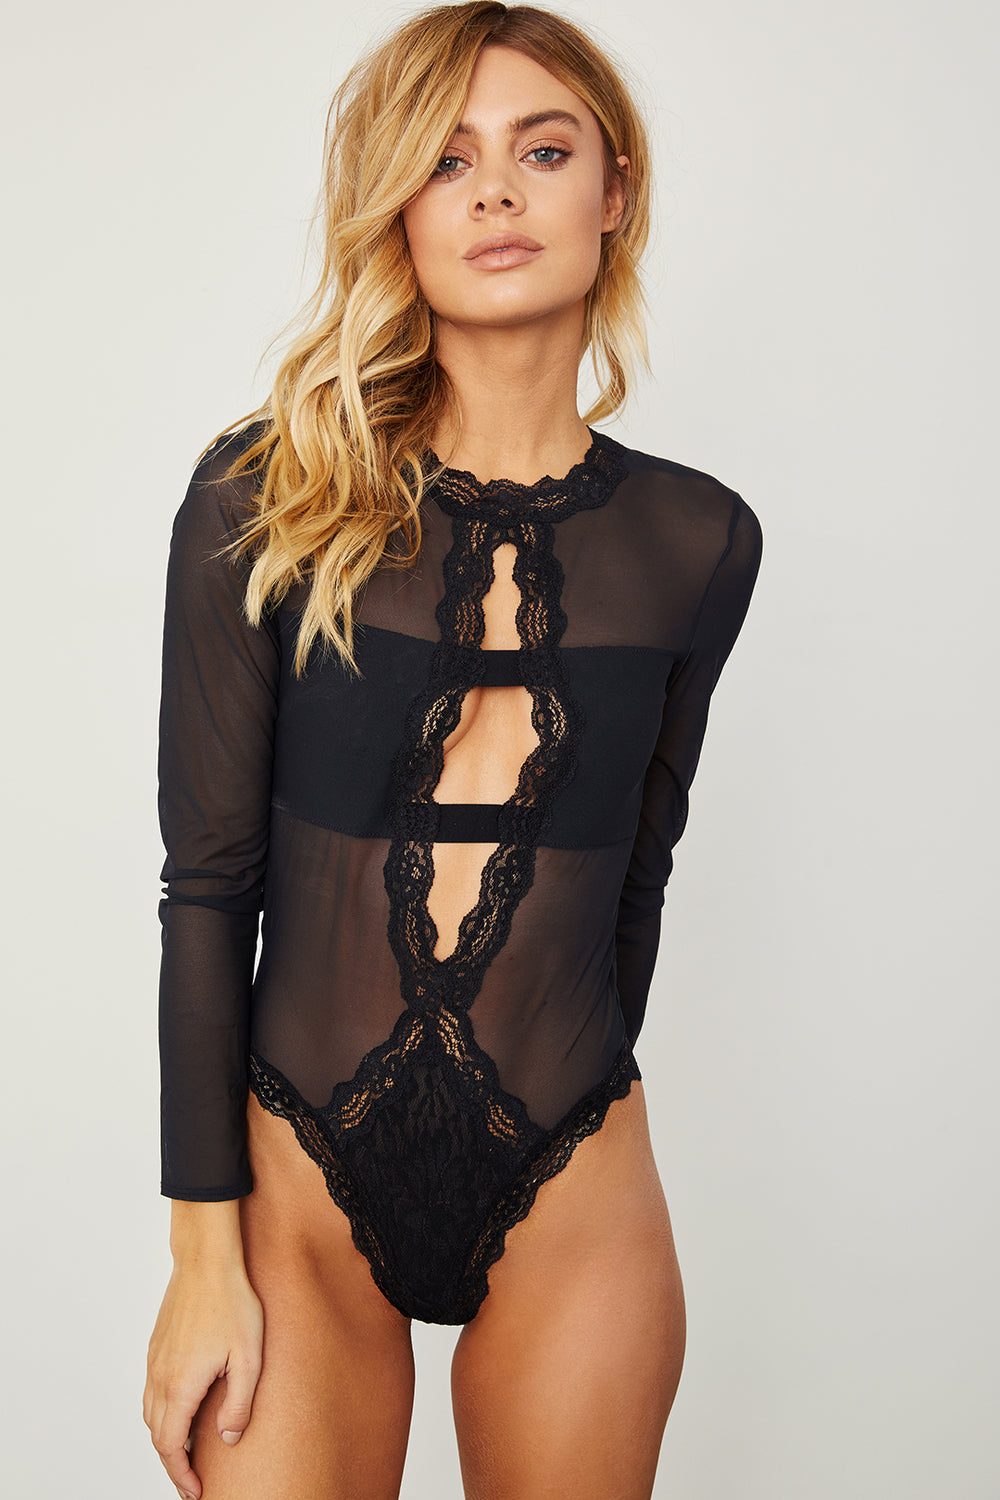 black mesh & lace sheer long-sleeved bodysuit. Sexy & comfortable.